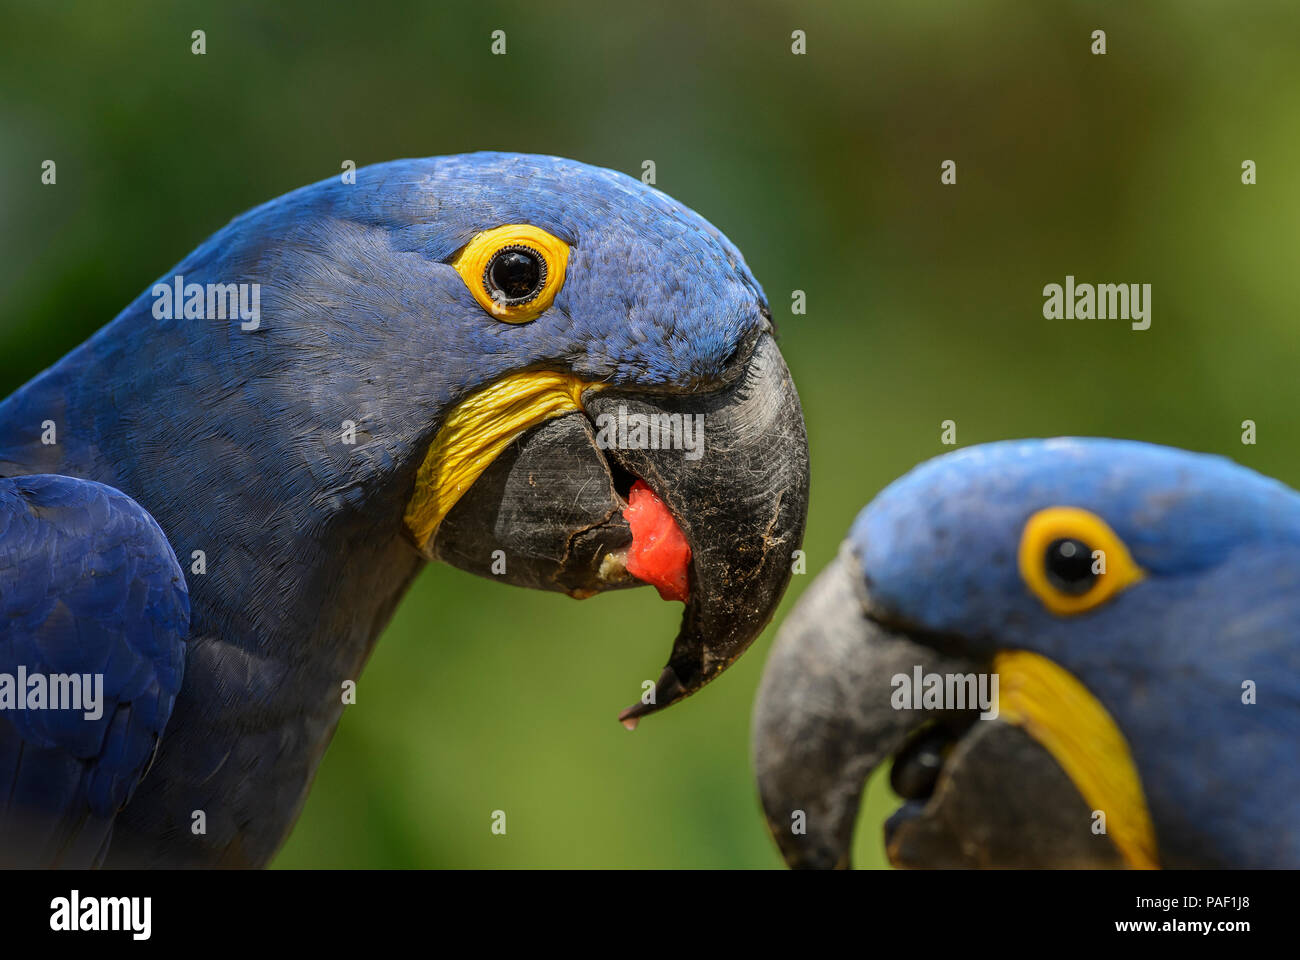 Hyacinth Macaw - Anodorhynchus hyacinthinus, beautiful large blue parrot from South American forests, Amazon basin. - Stock Image